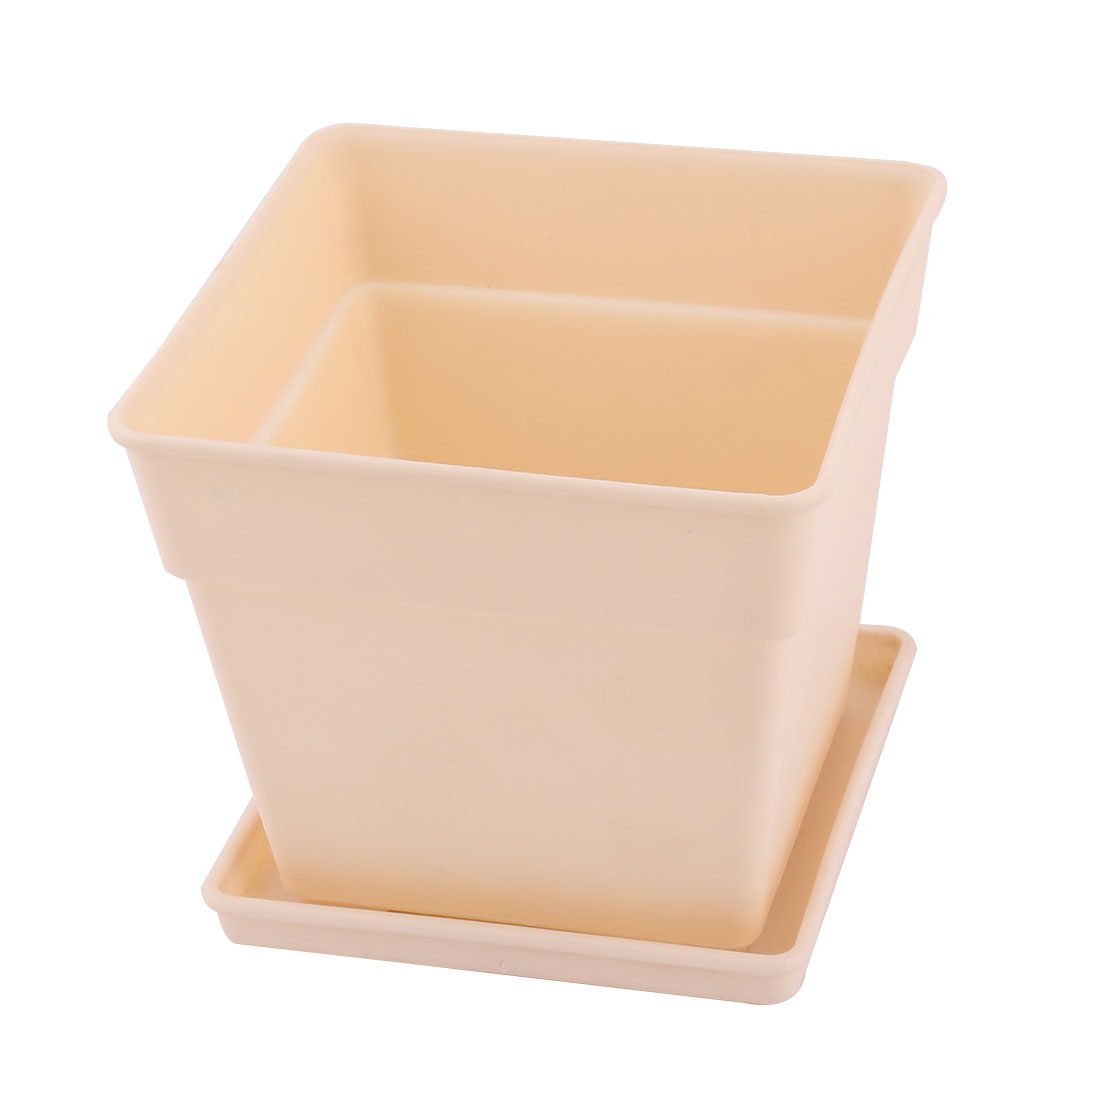 Office Decor Plastic Square Flower Plant Pot Tray Saucer Holder Container Beige